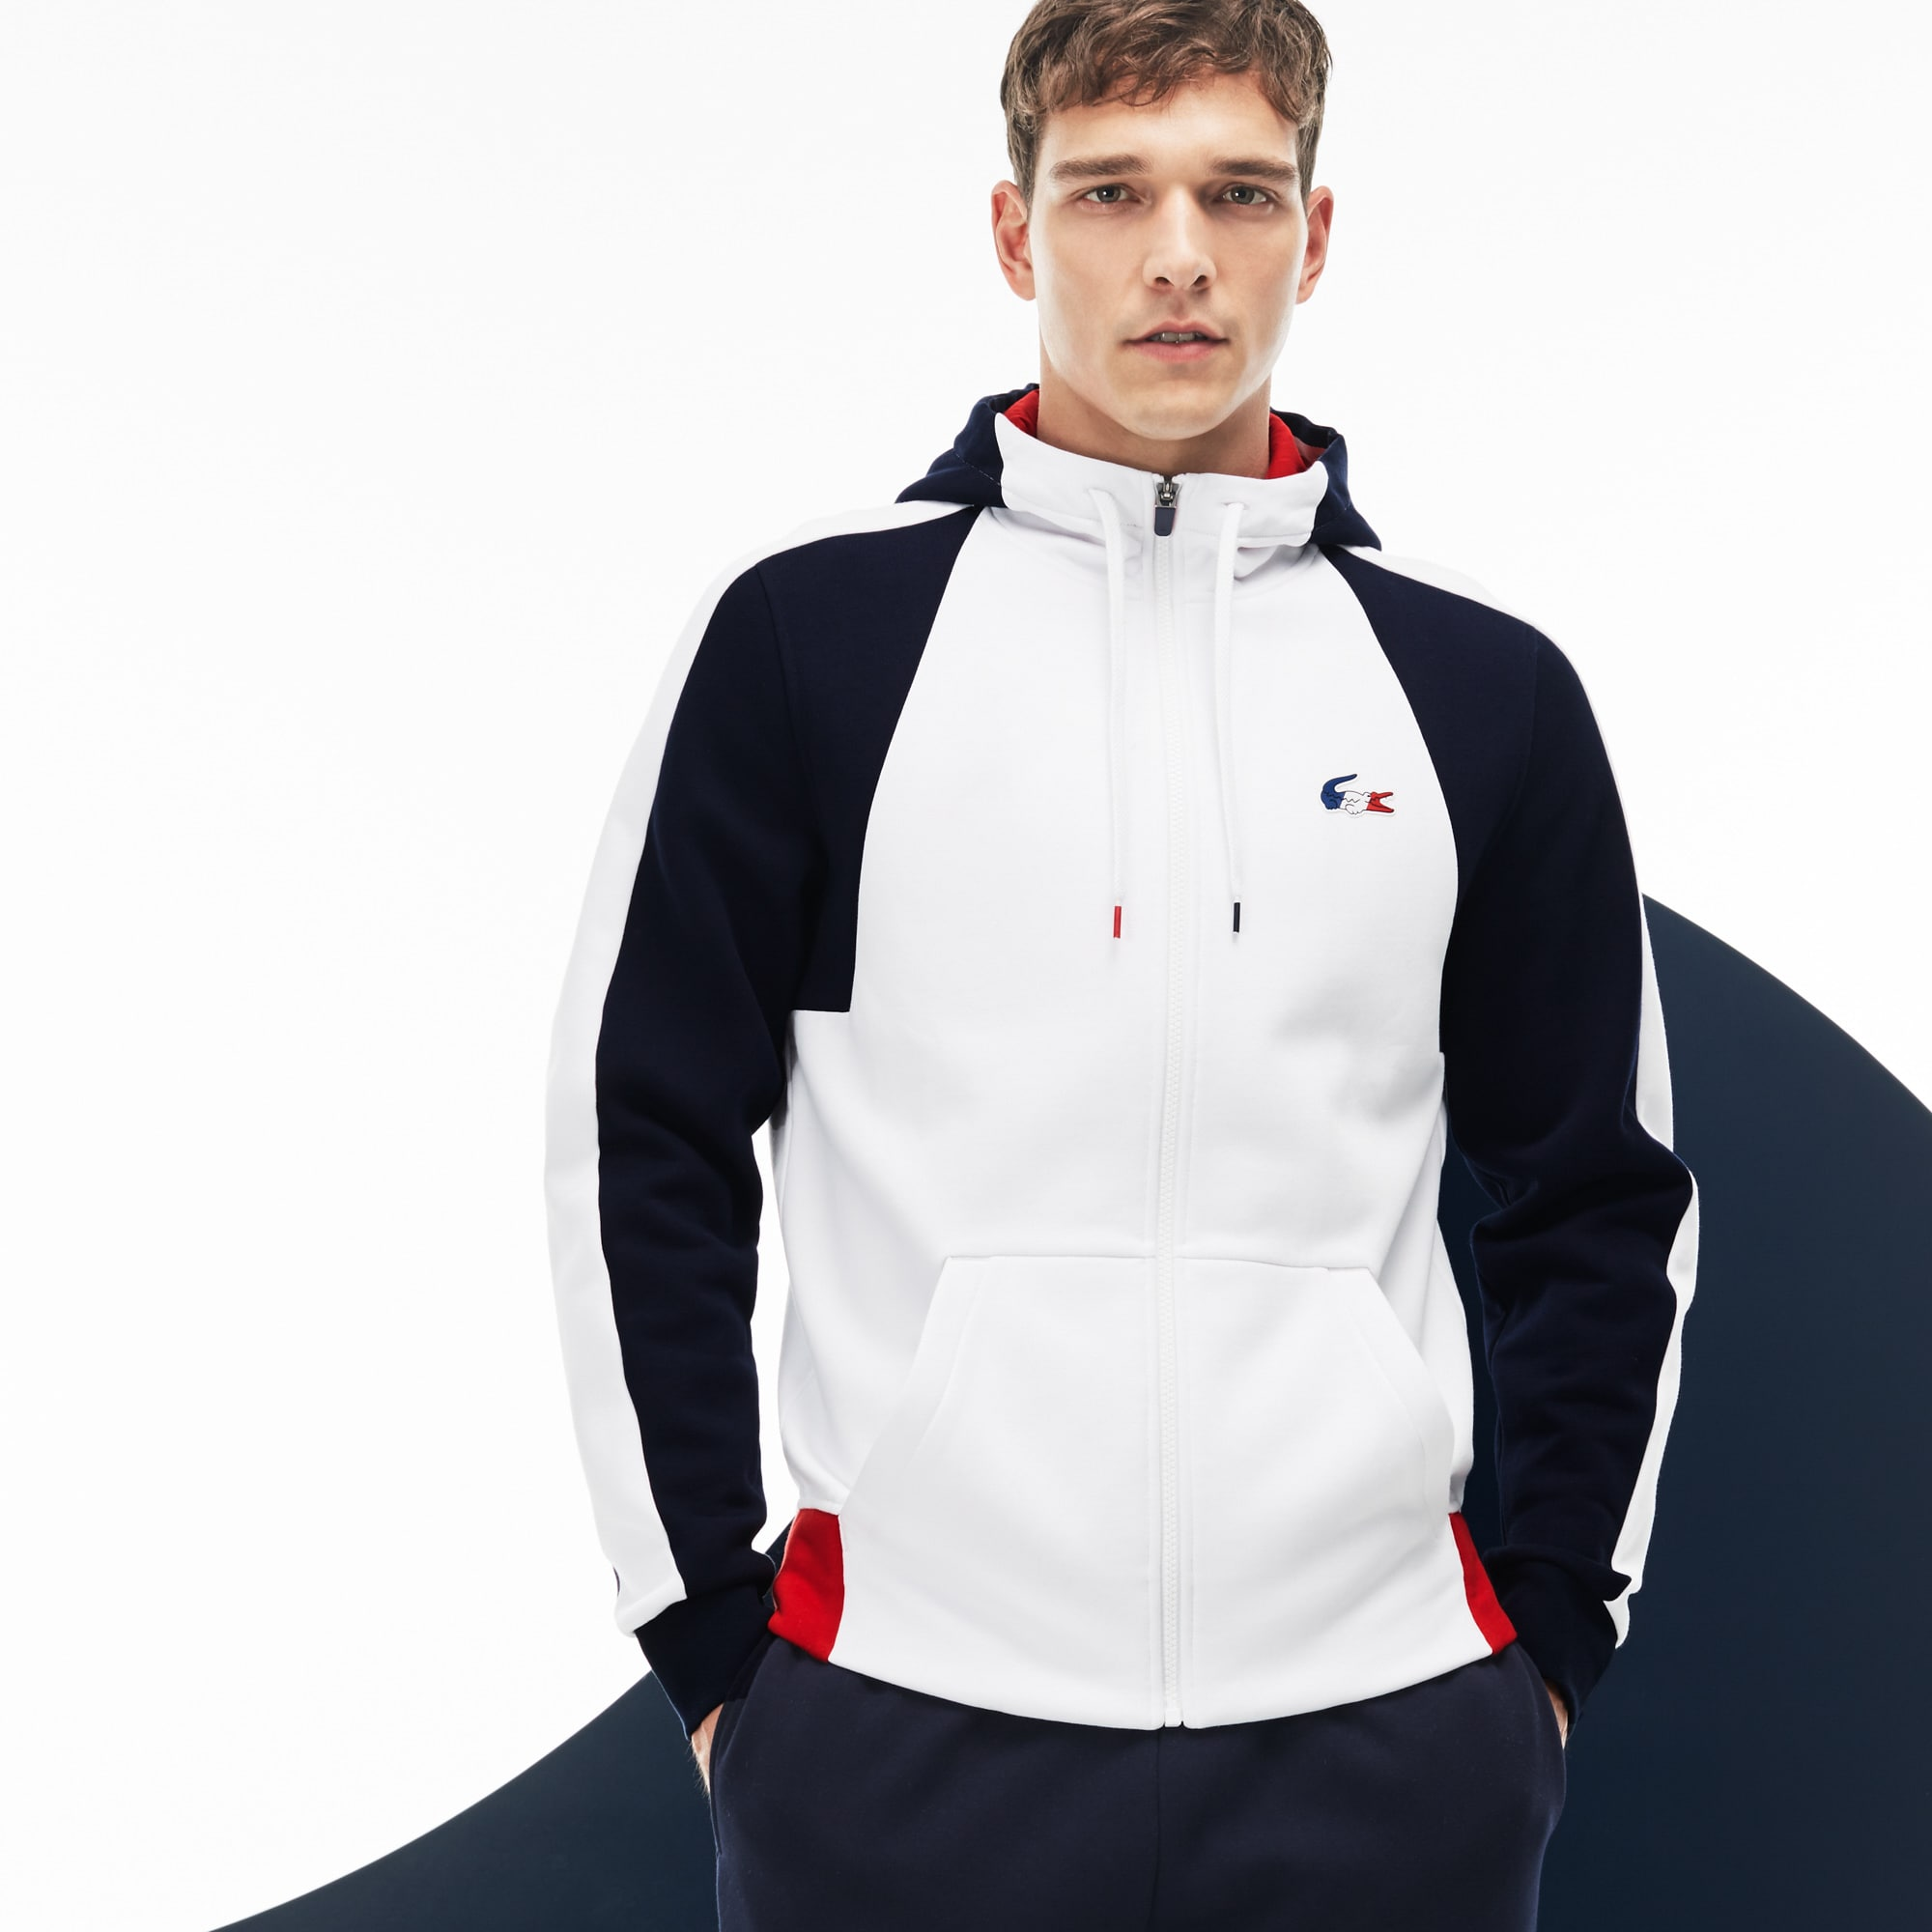 Moletom Lacoste French Sporting Spirit Edition Masculino em Lã com Color Block